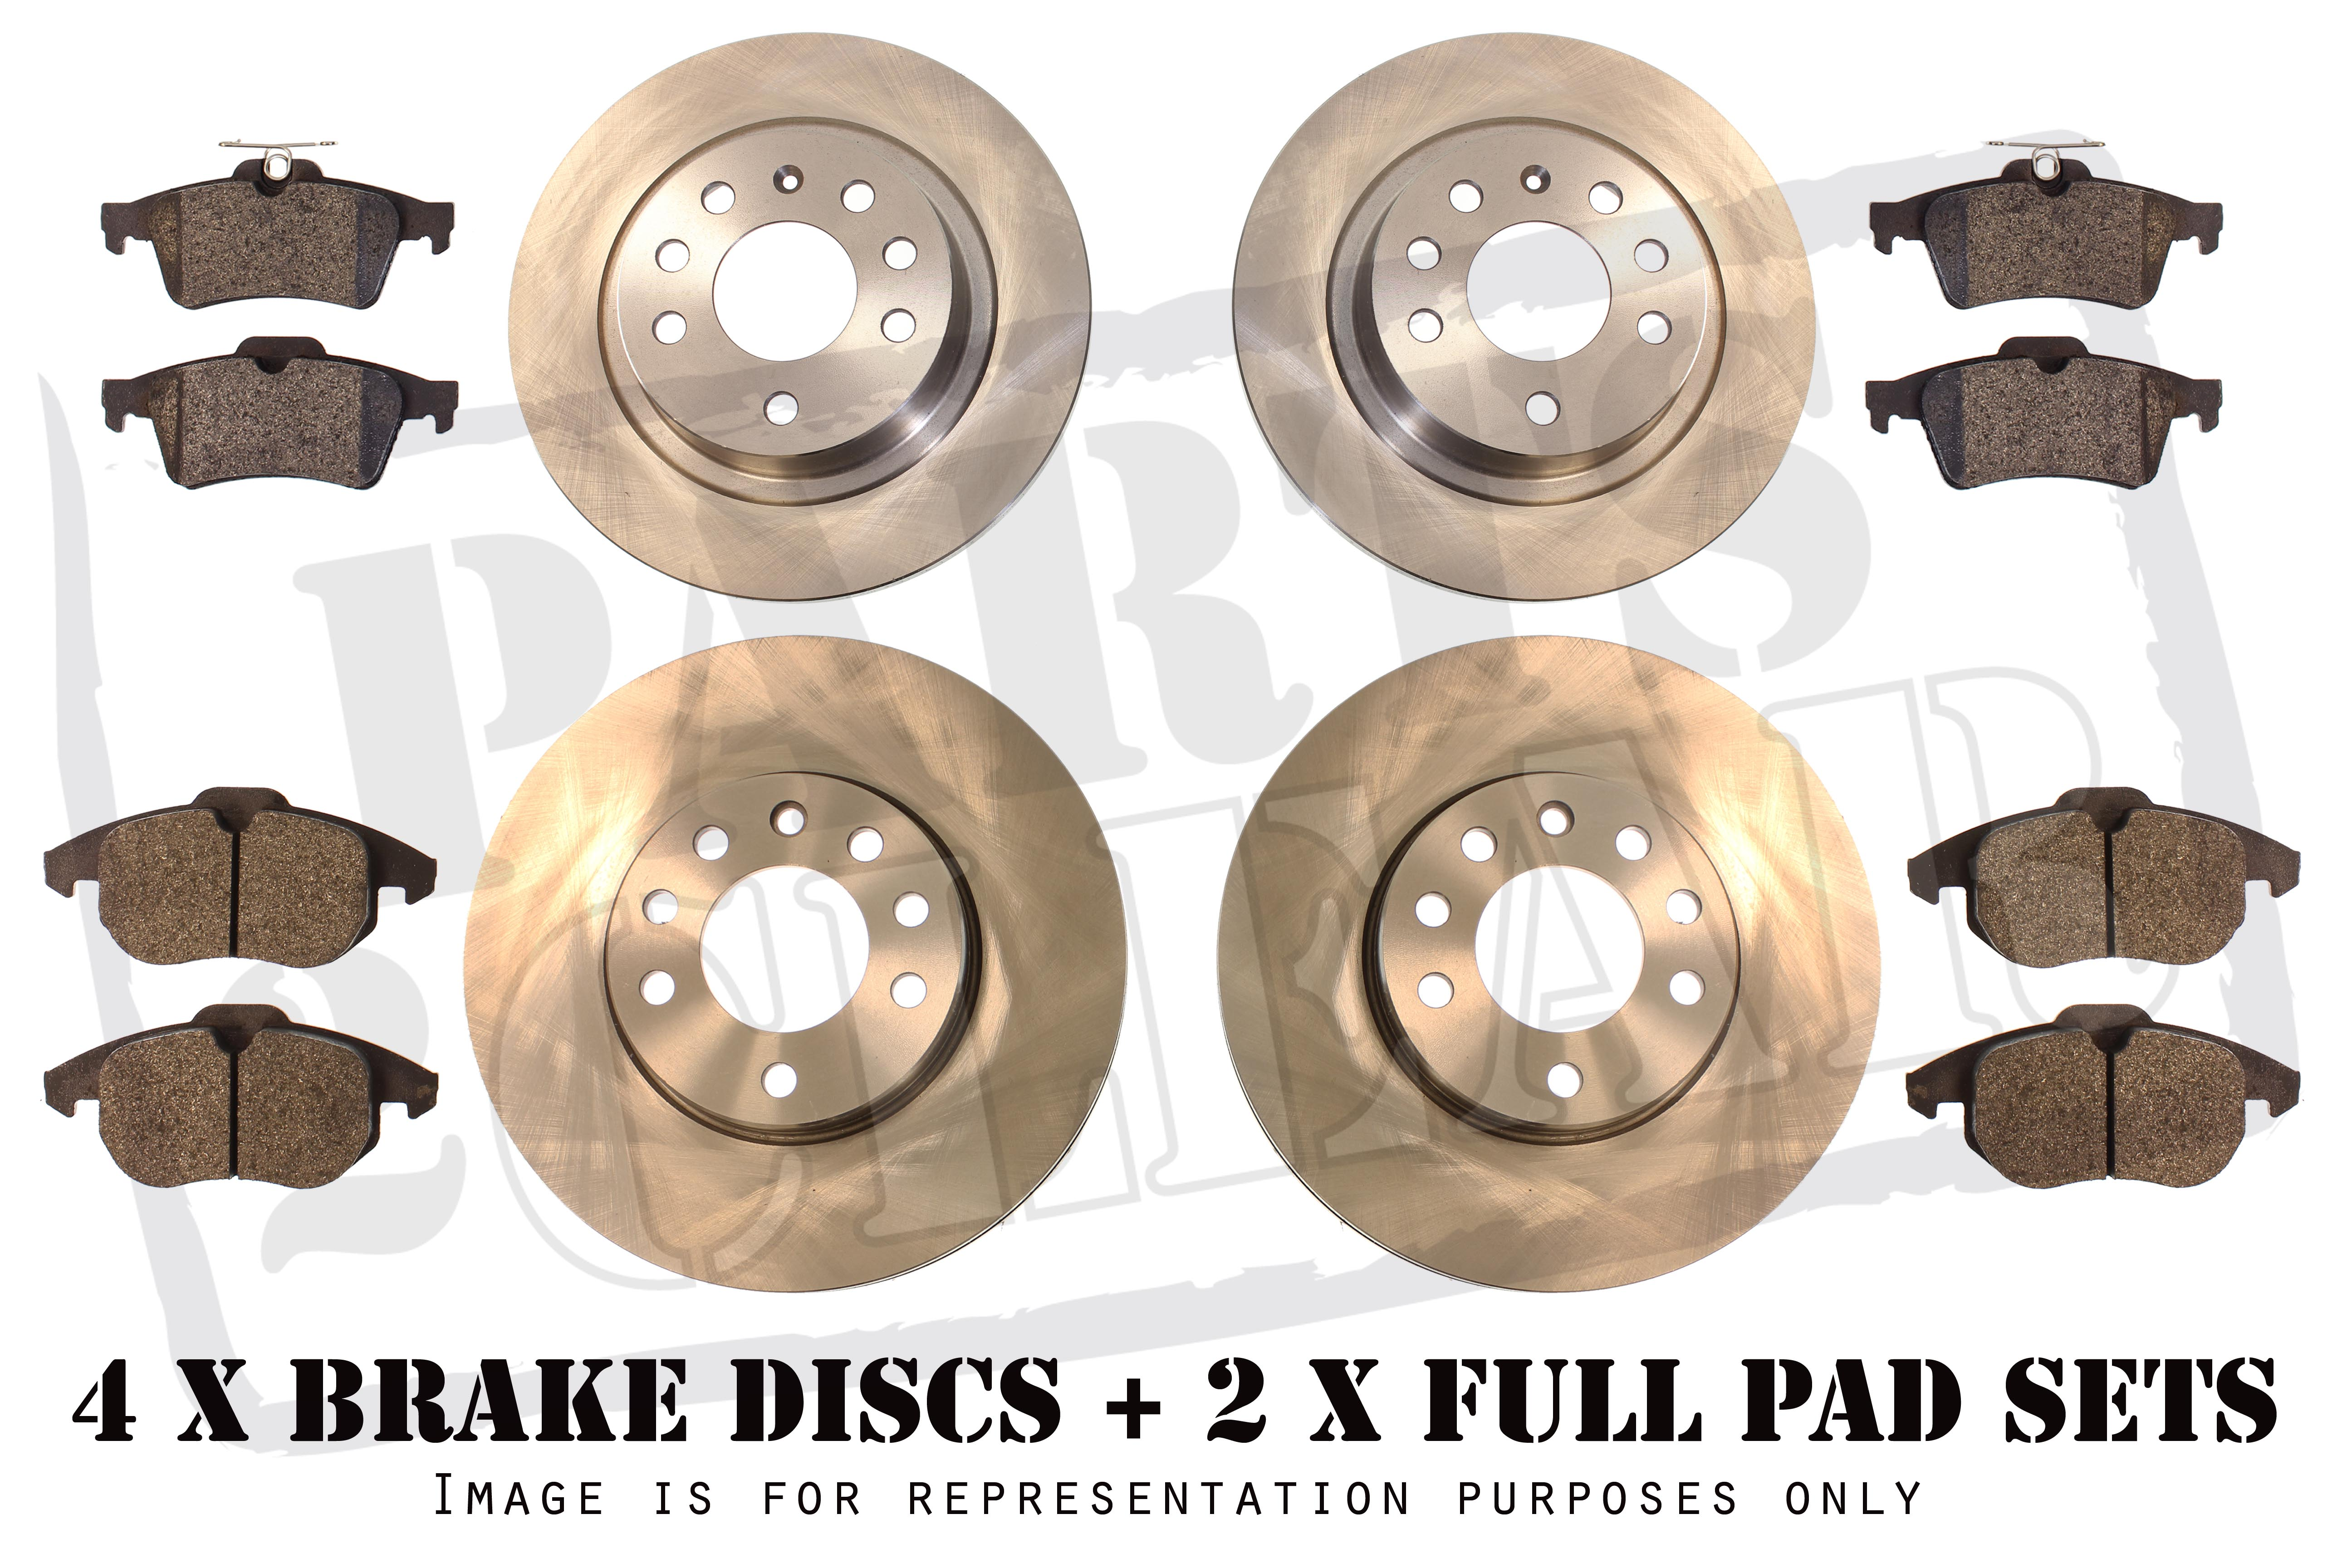 Rear Brake Discs and Pads to fit Ford Fiesta 2.0 ST ST150